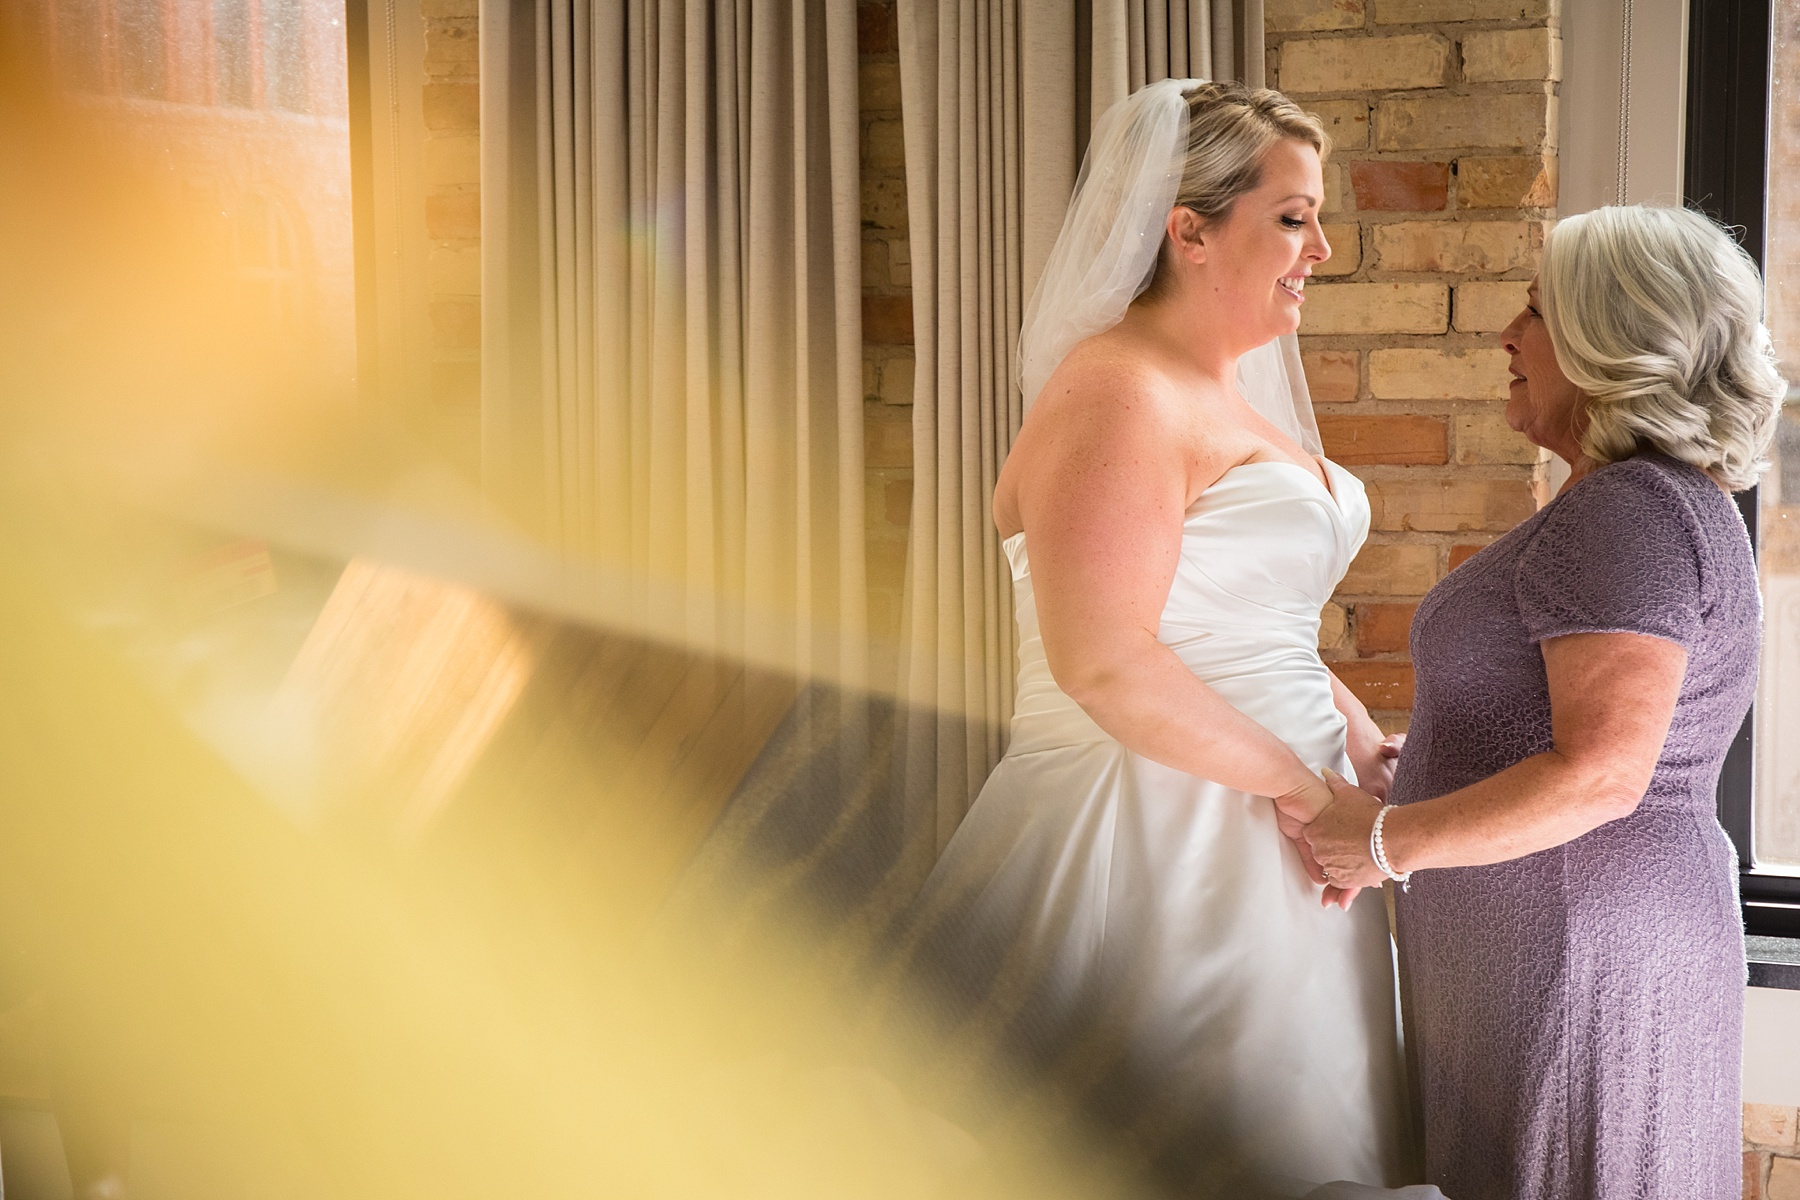 Brandon_Shafer_Photography_Brad_Sarah_Downtown_Grand_Rapids_Wedding_0012.jpg